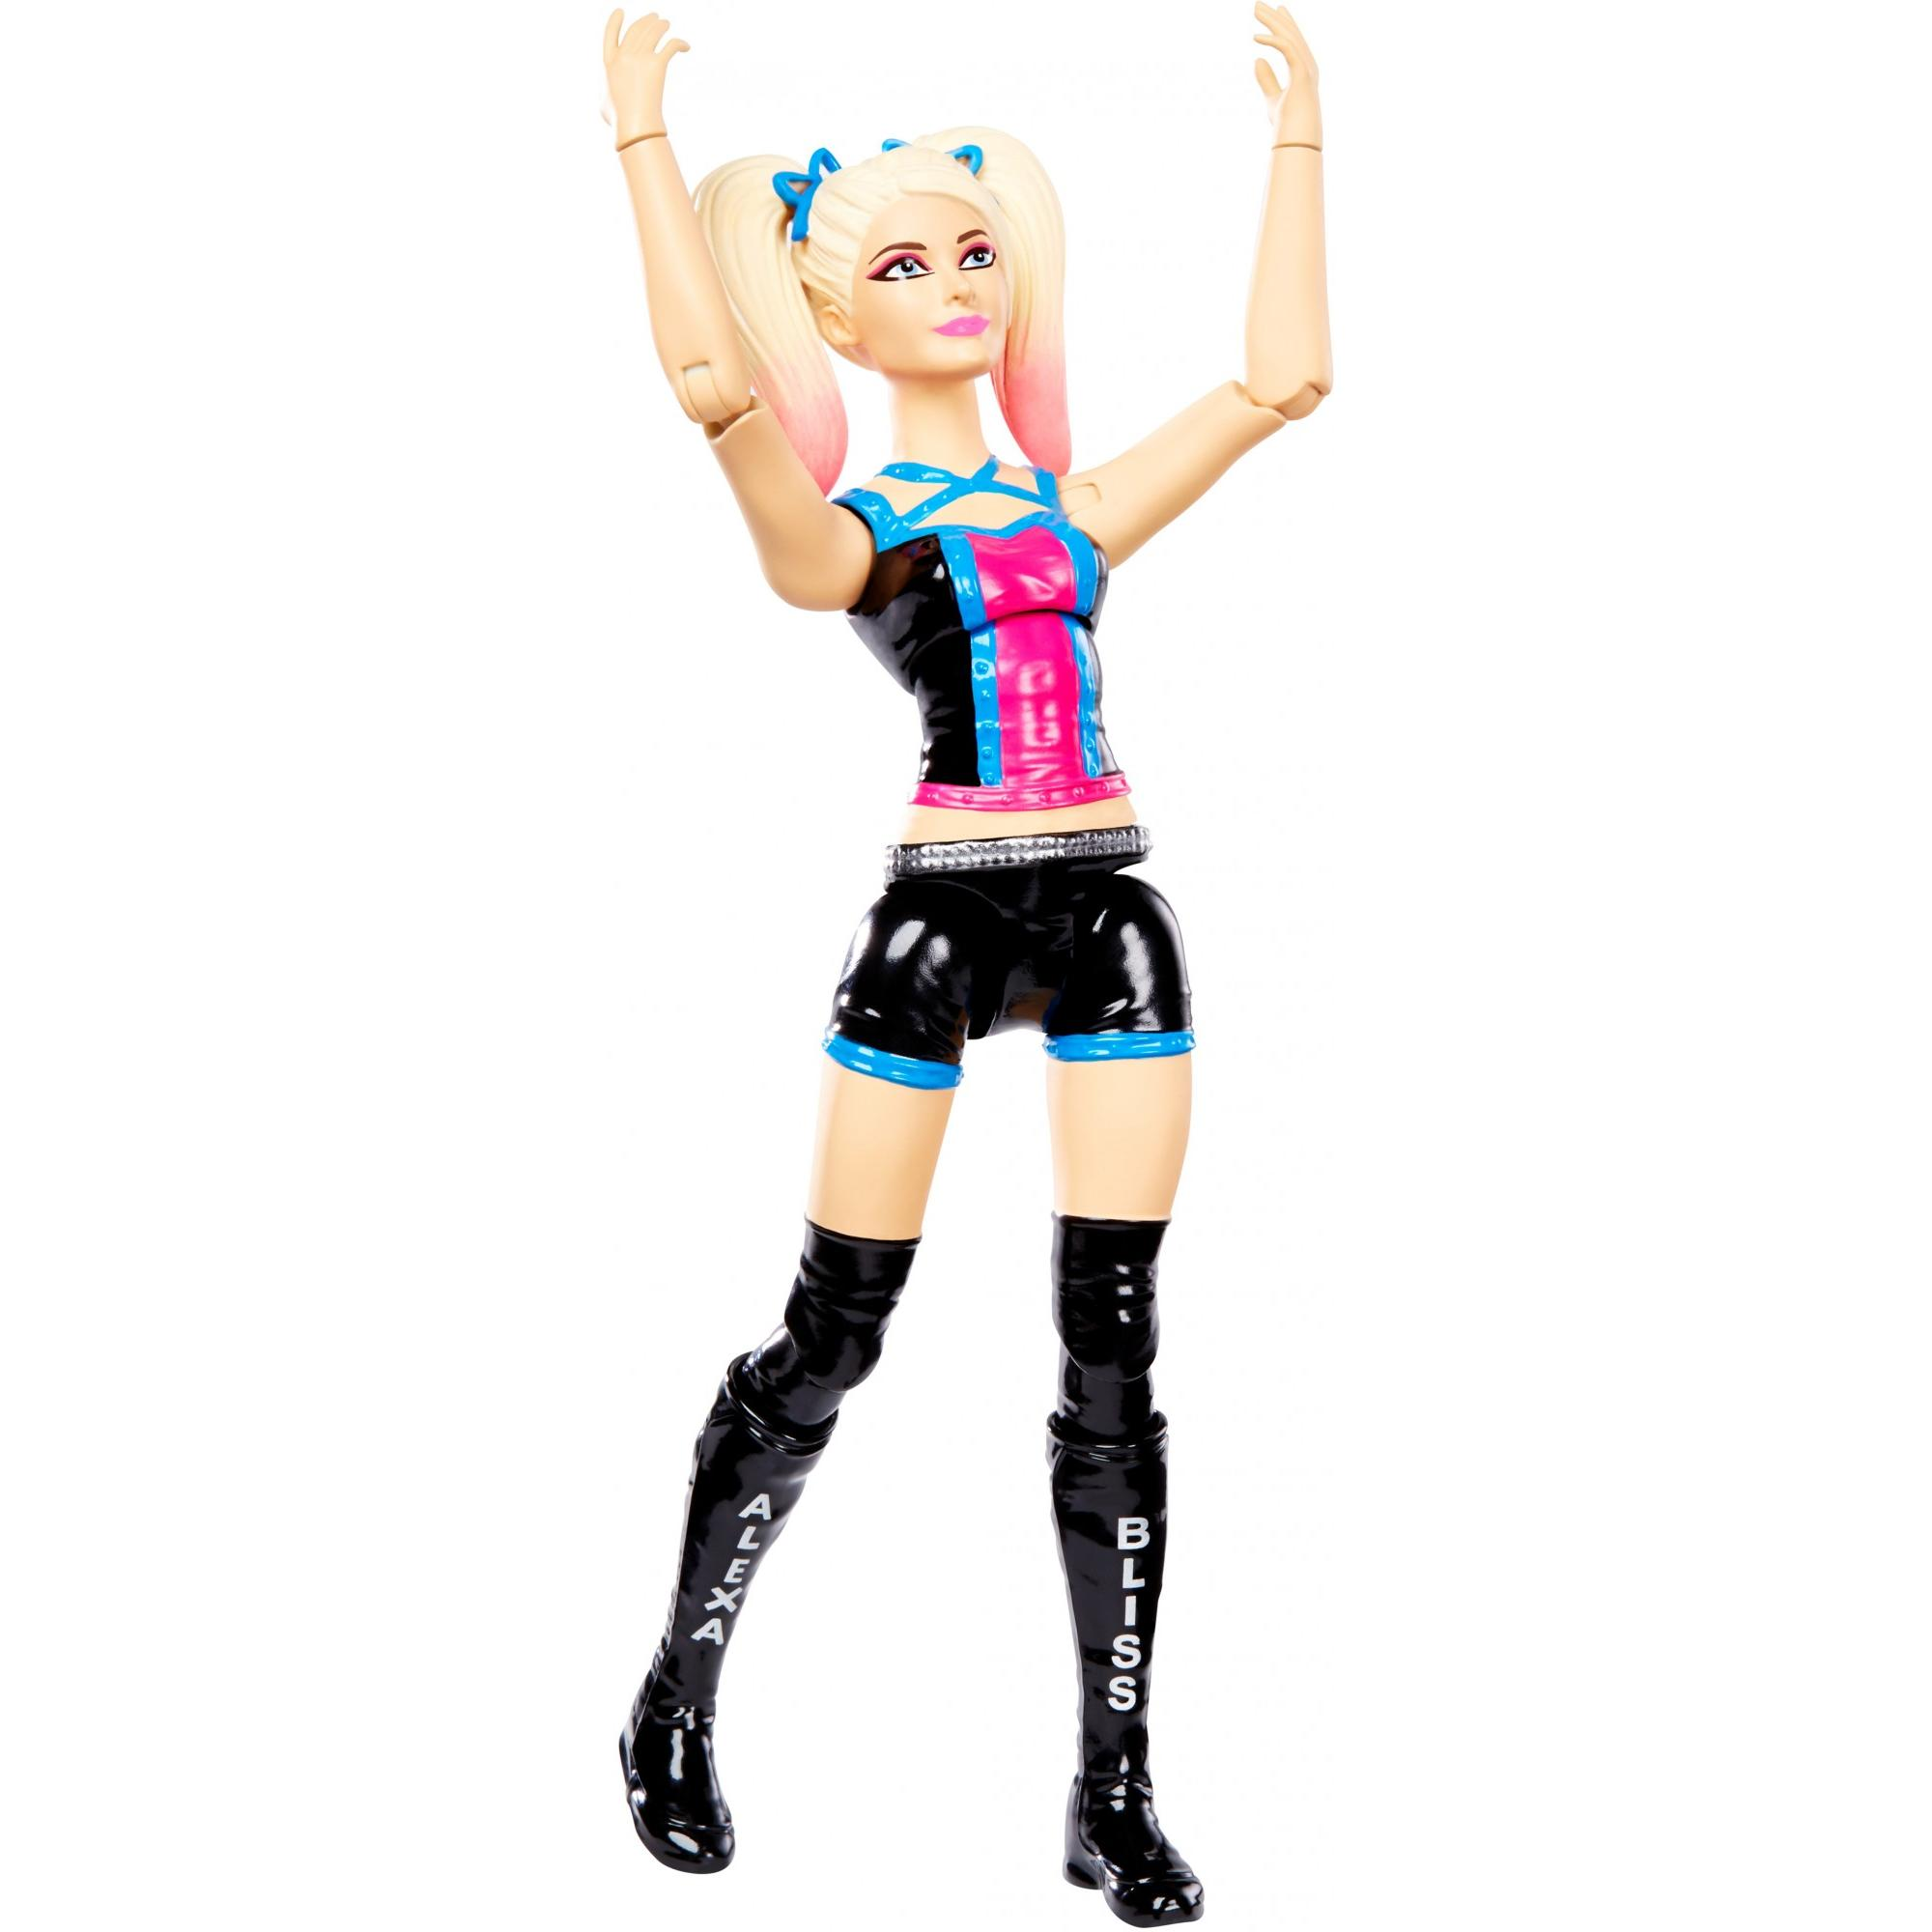 WWE Superstars Alexa Bliss Action Figure